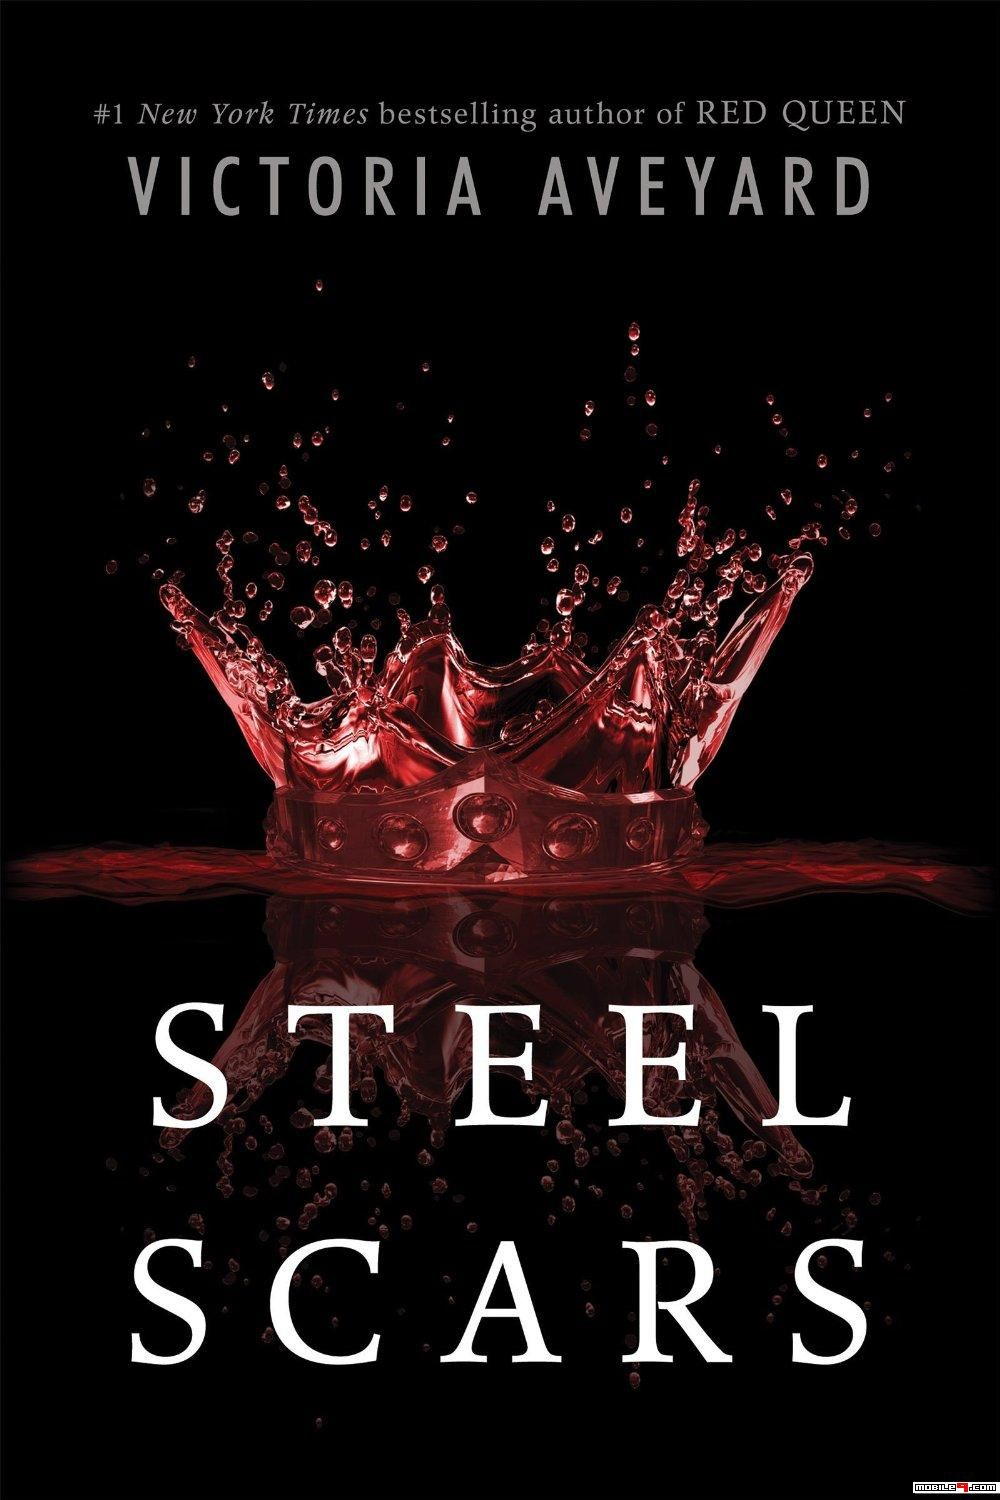 Steel Scars (Red Queen 0 2) - Victoria Aveyard | Free Books